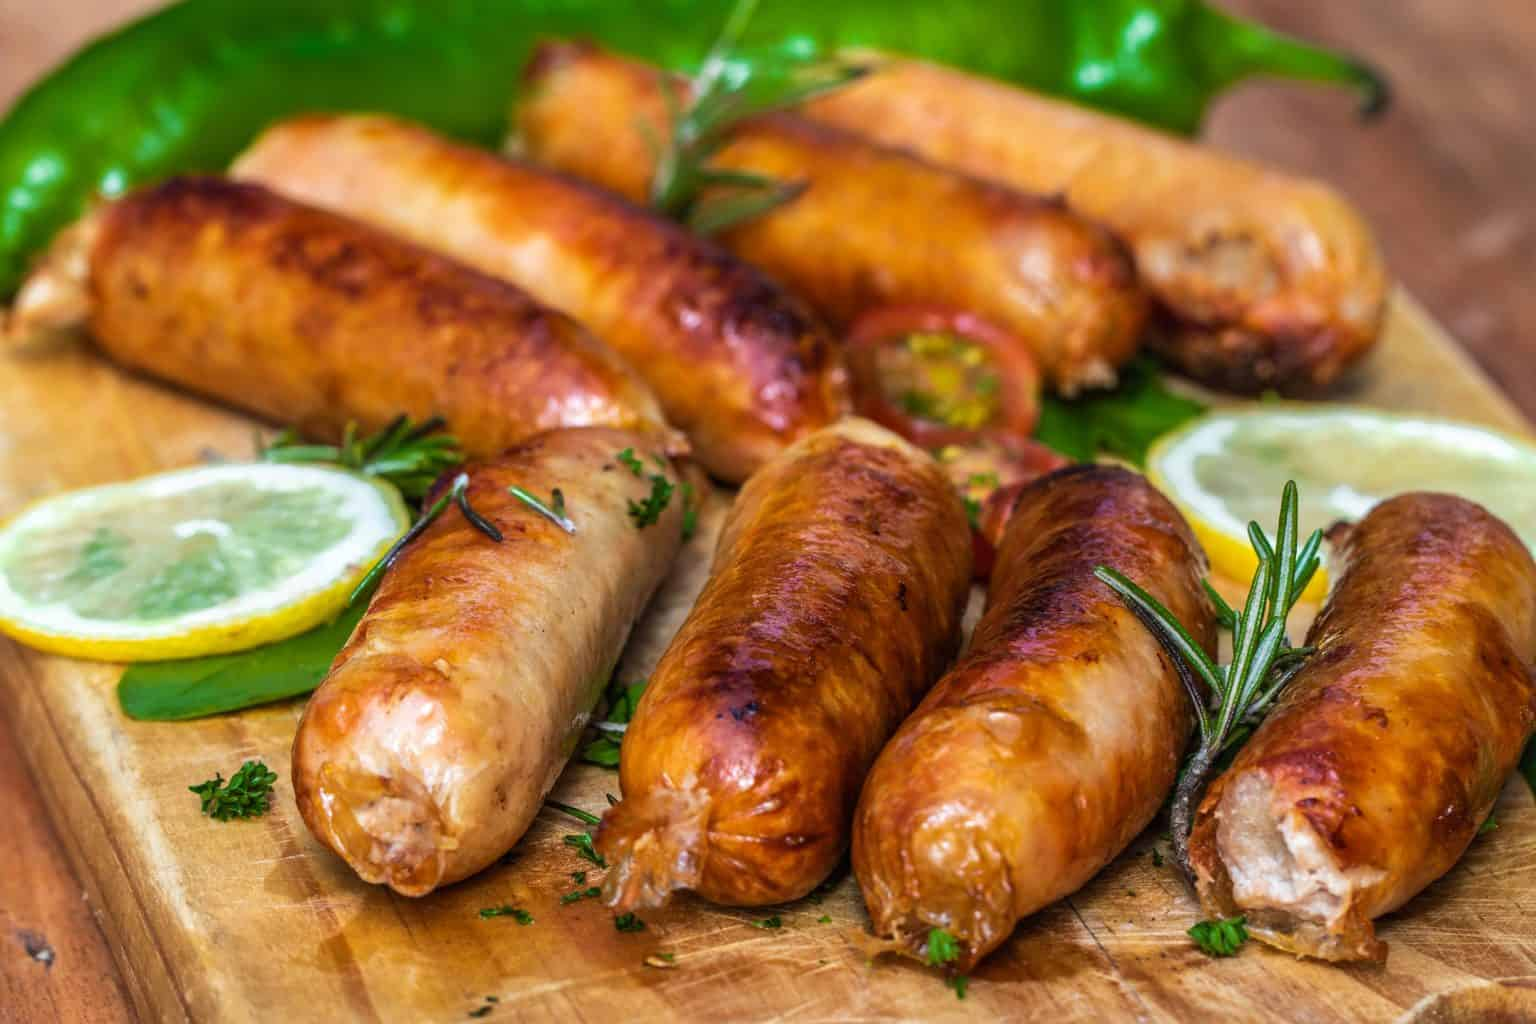 Sausages with seasoning ang leaves being served